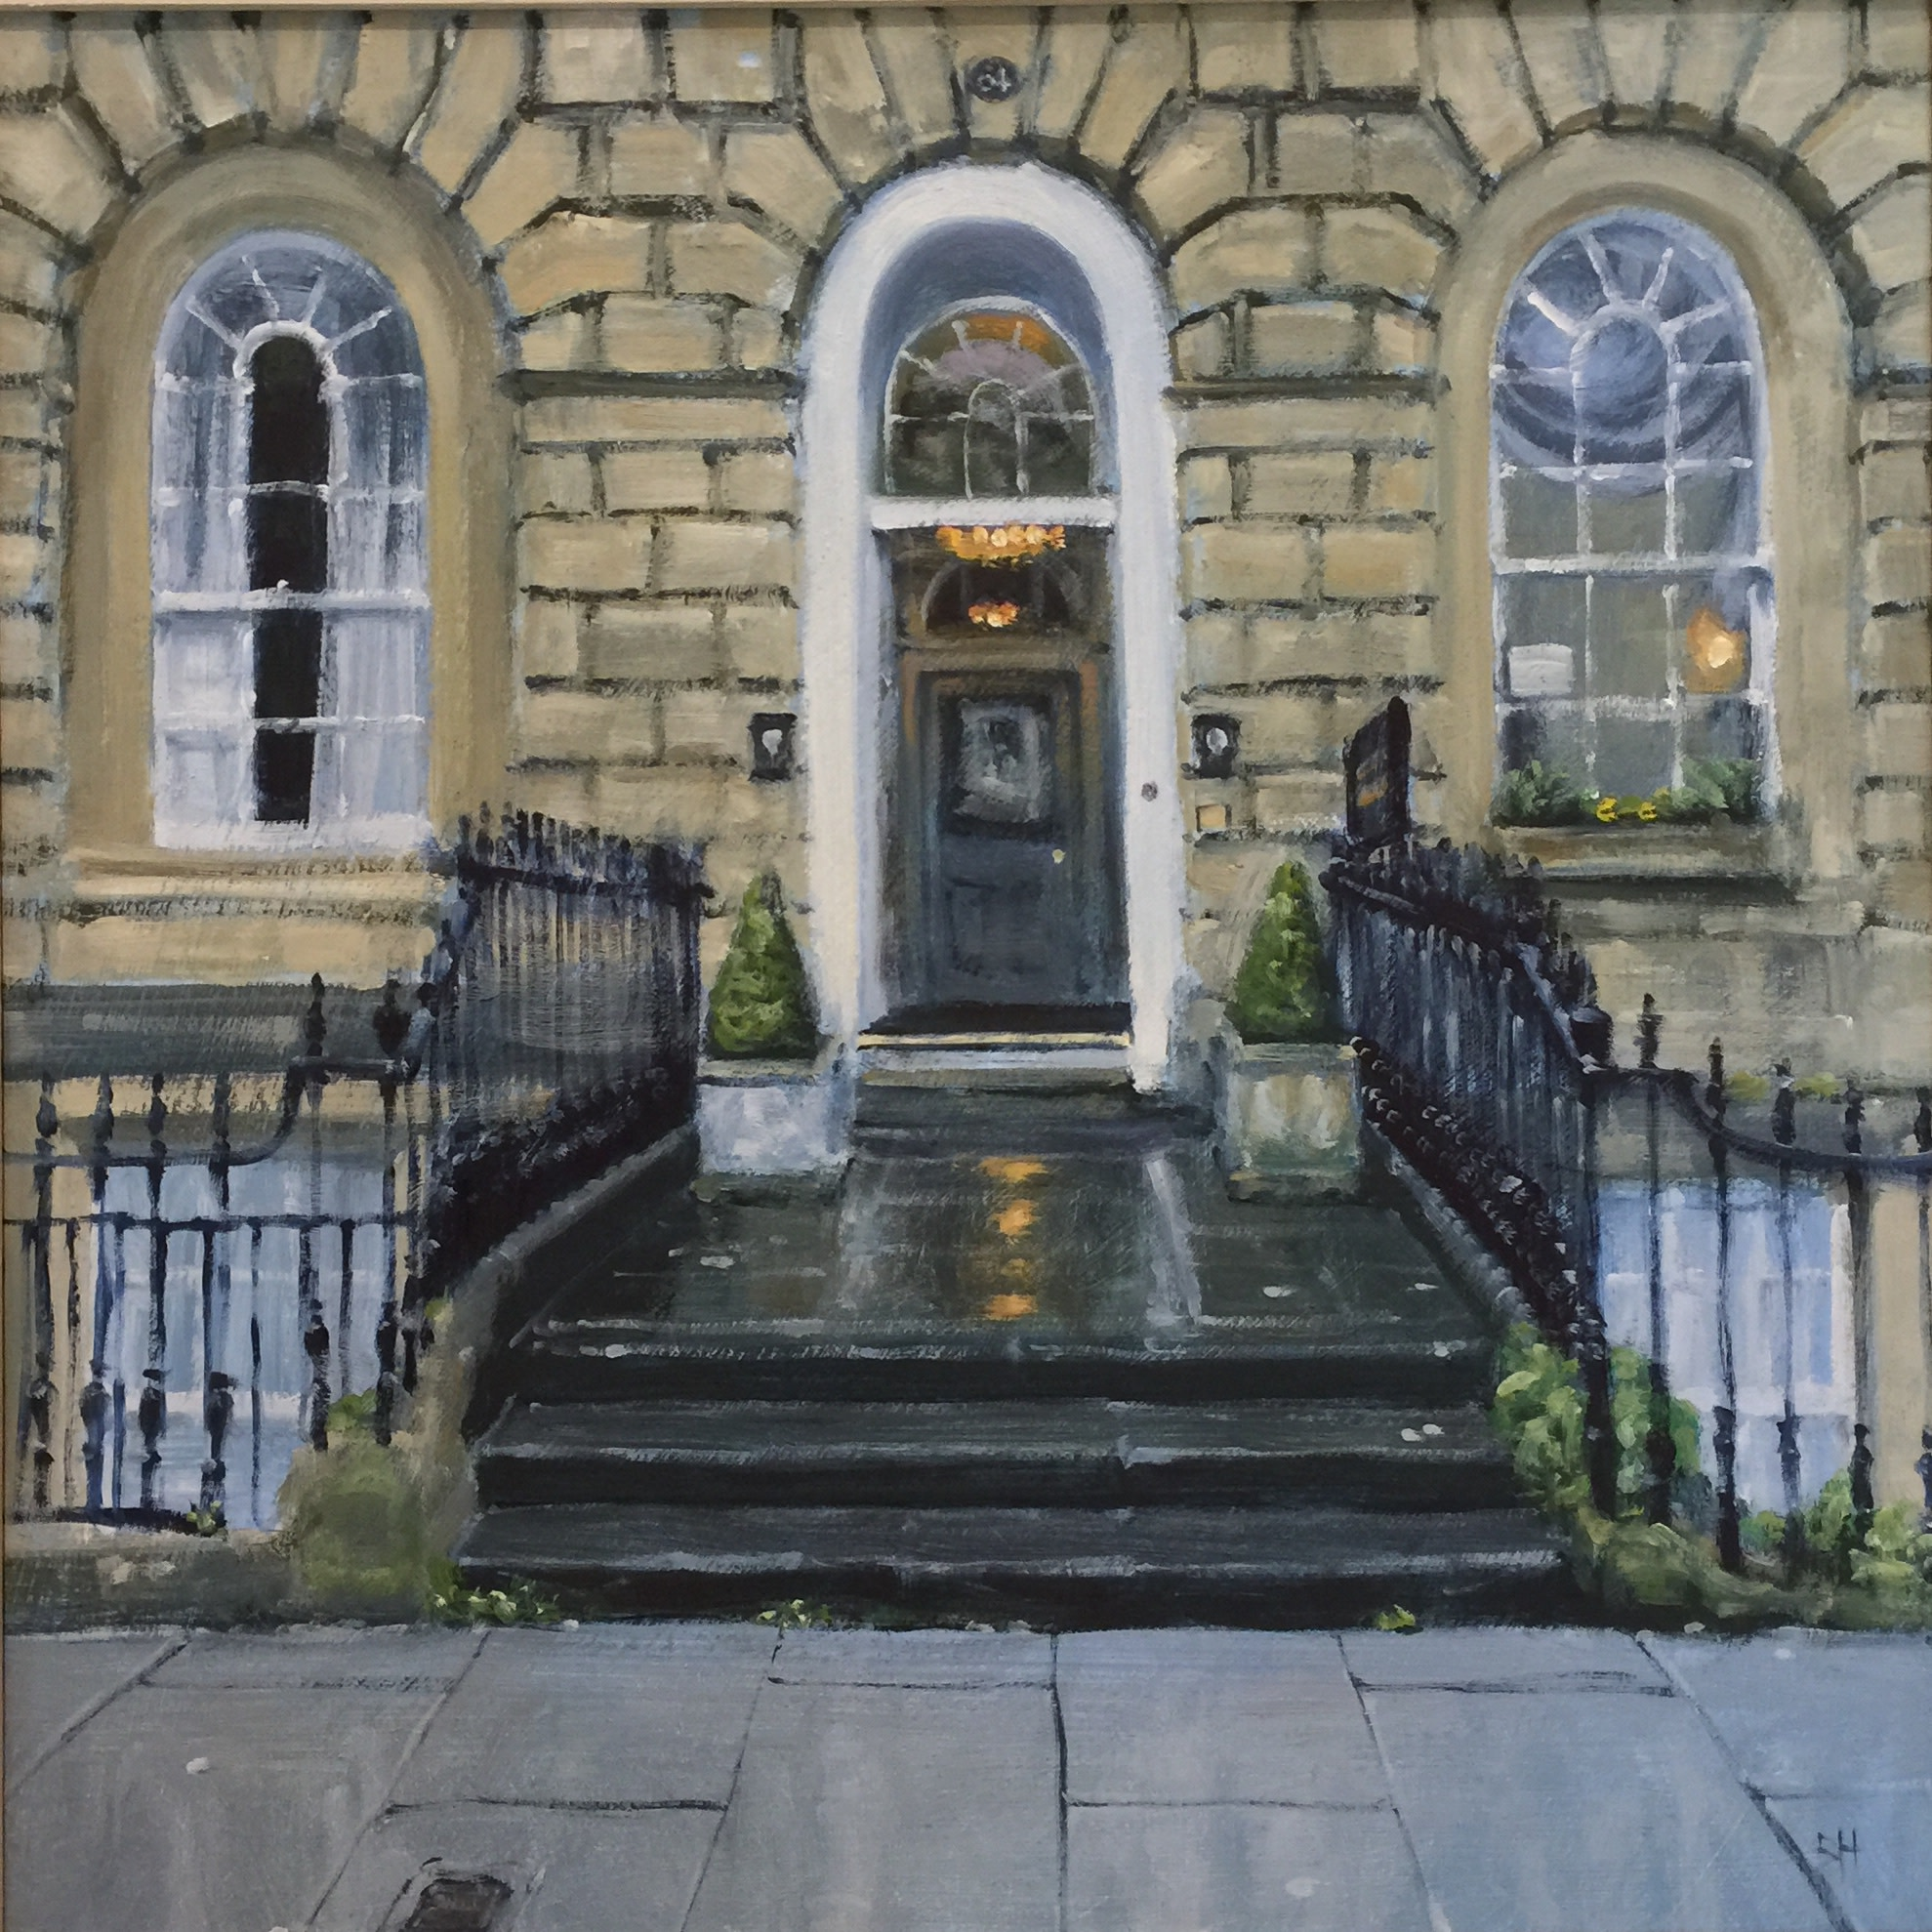 <span class=&#34;link fancybox-details-link&#34;><a href=&#34;/artists/181-ben-hughes/works/2774-ben-hughes-64-great-pulteney-street/&#34;>View Detail Page</a></span><div class=&#34;artist&#34;><strong>Ben Hughes</strong></div> <div class=&#34;title&#34;><em>64, Great Pulteney Street </em></div> <div class=&#34;medium&#34;>Oil on Board</div> <div class=&#34;dimensions&#34;>30 x 30 cm </div><div class=&#34;price&#34;>£550.00</div><div class=&#34;copyright_line&#34;>Copyright The Artist</div>